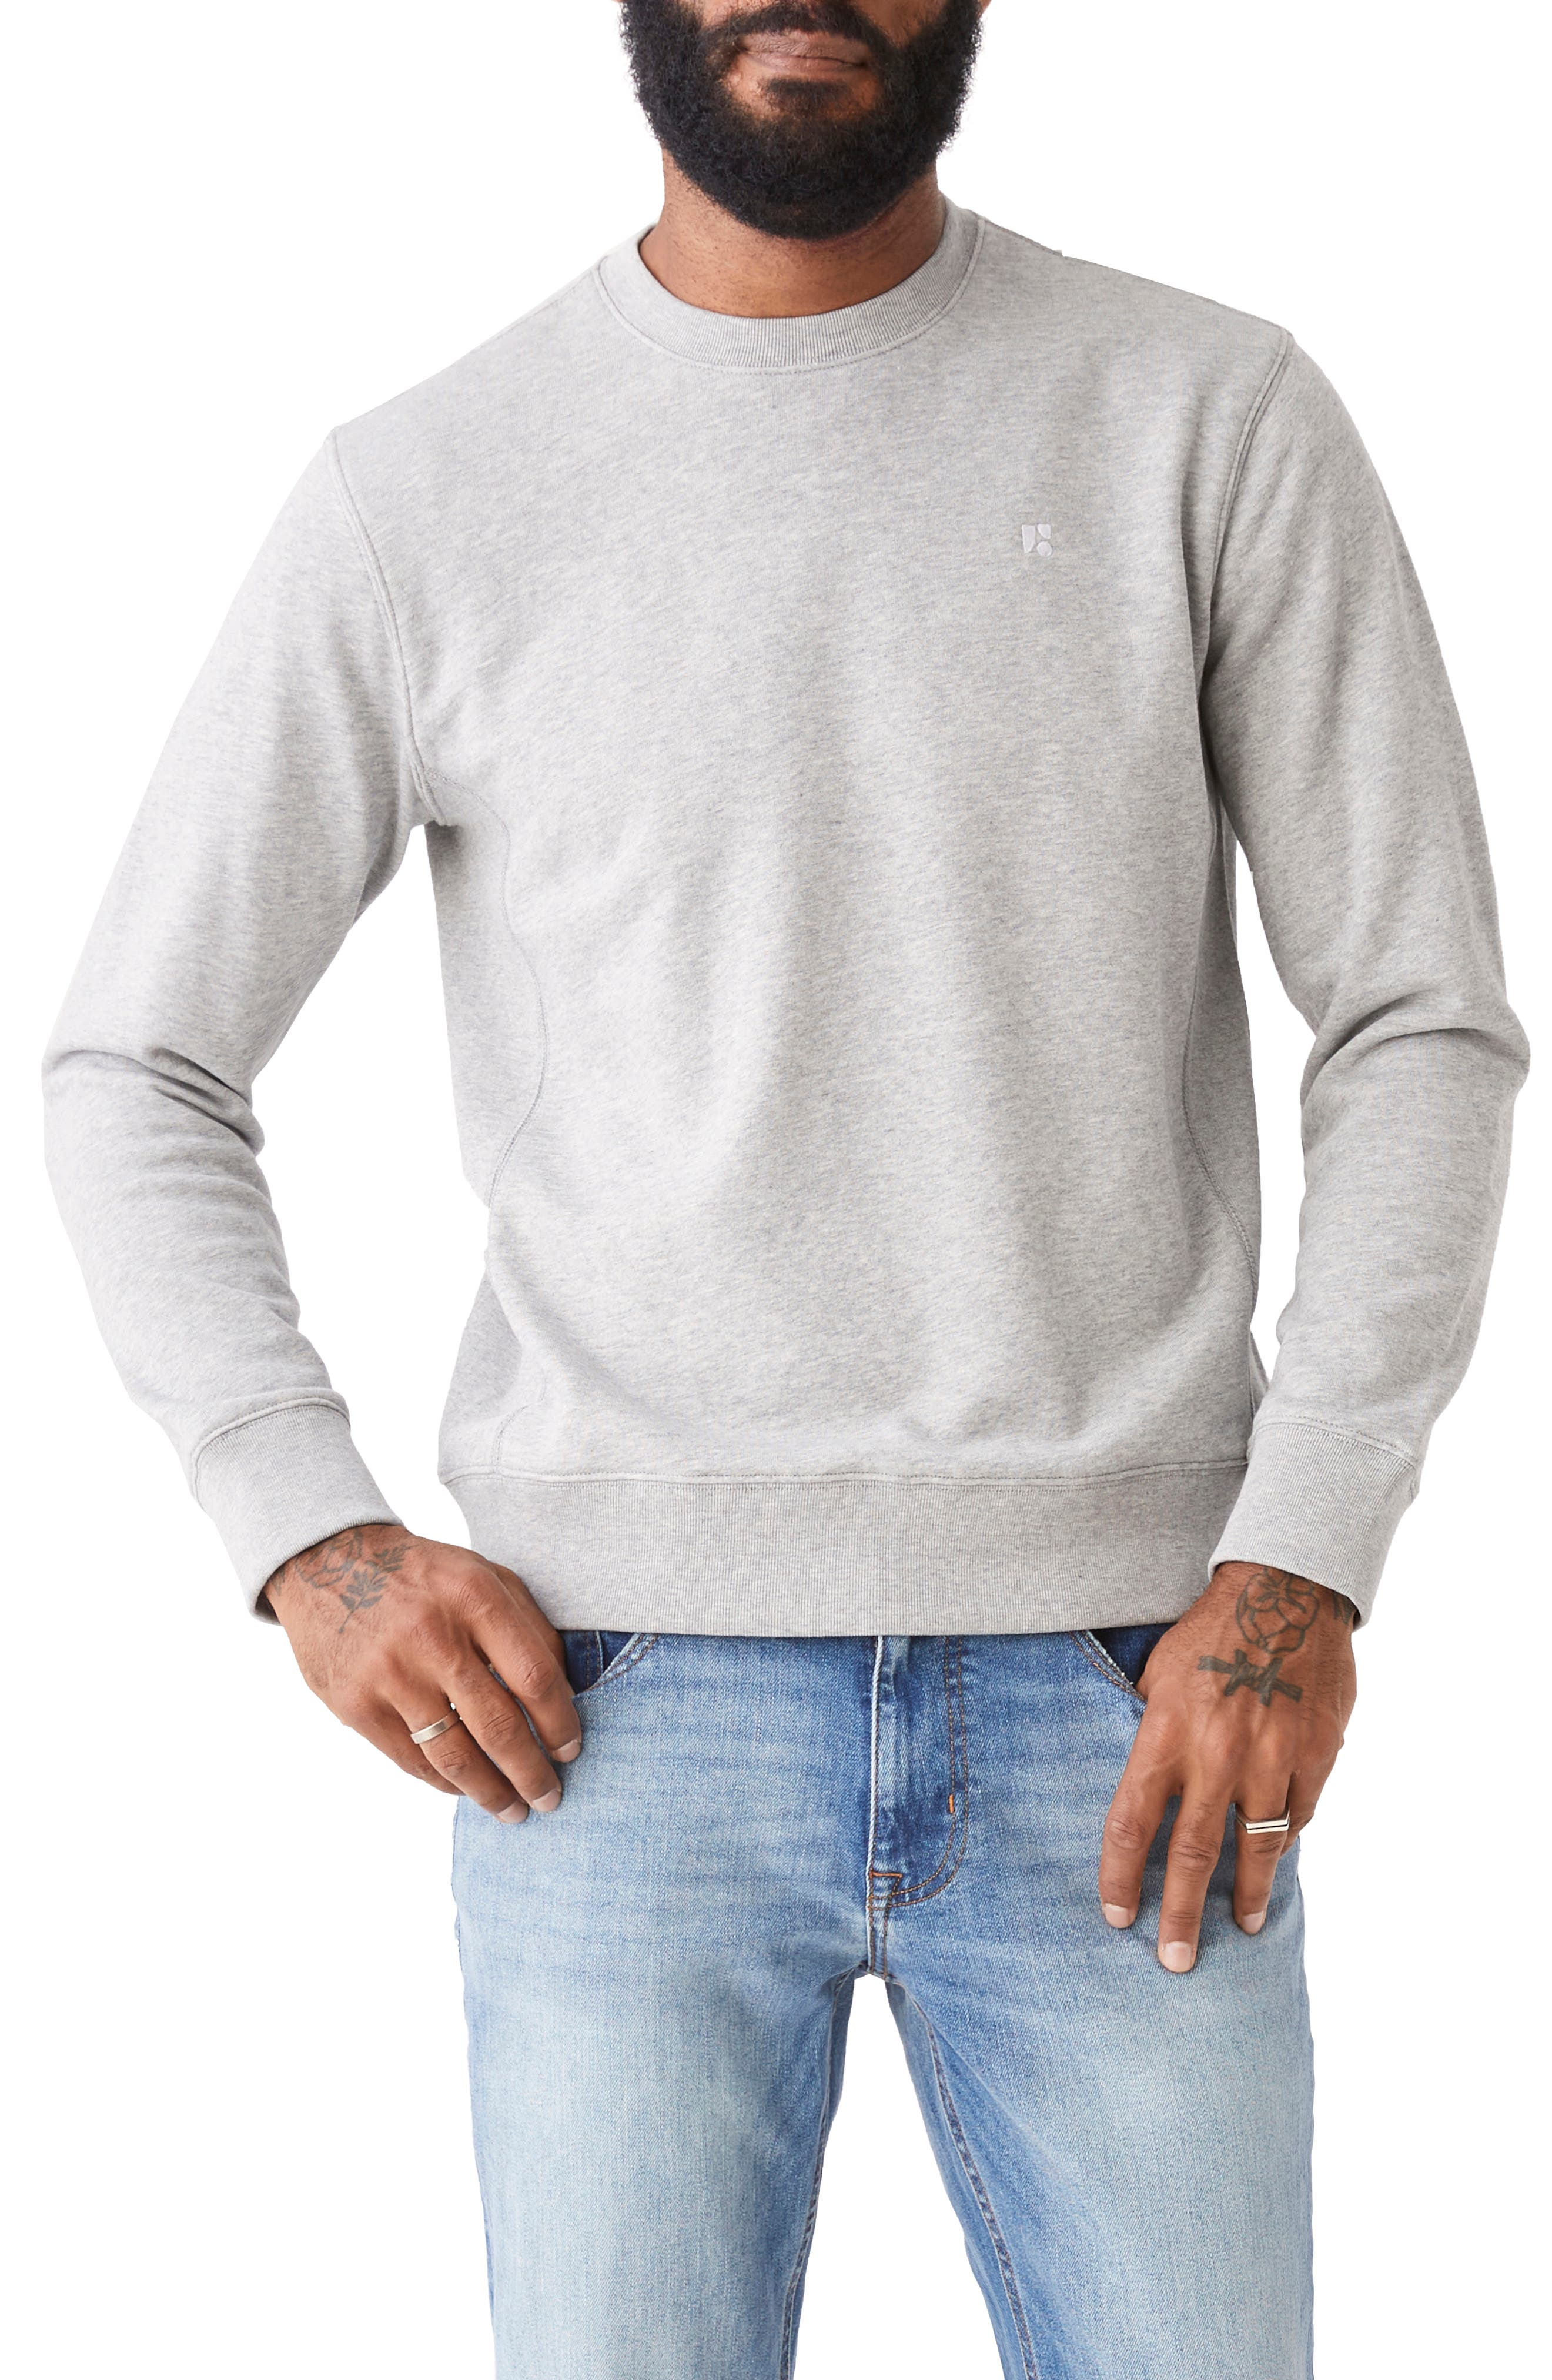 The 76 French Terry Sweatshirt